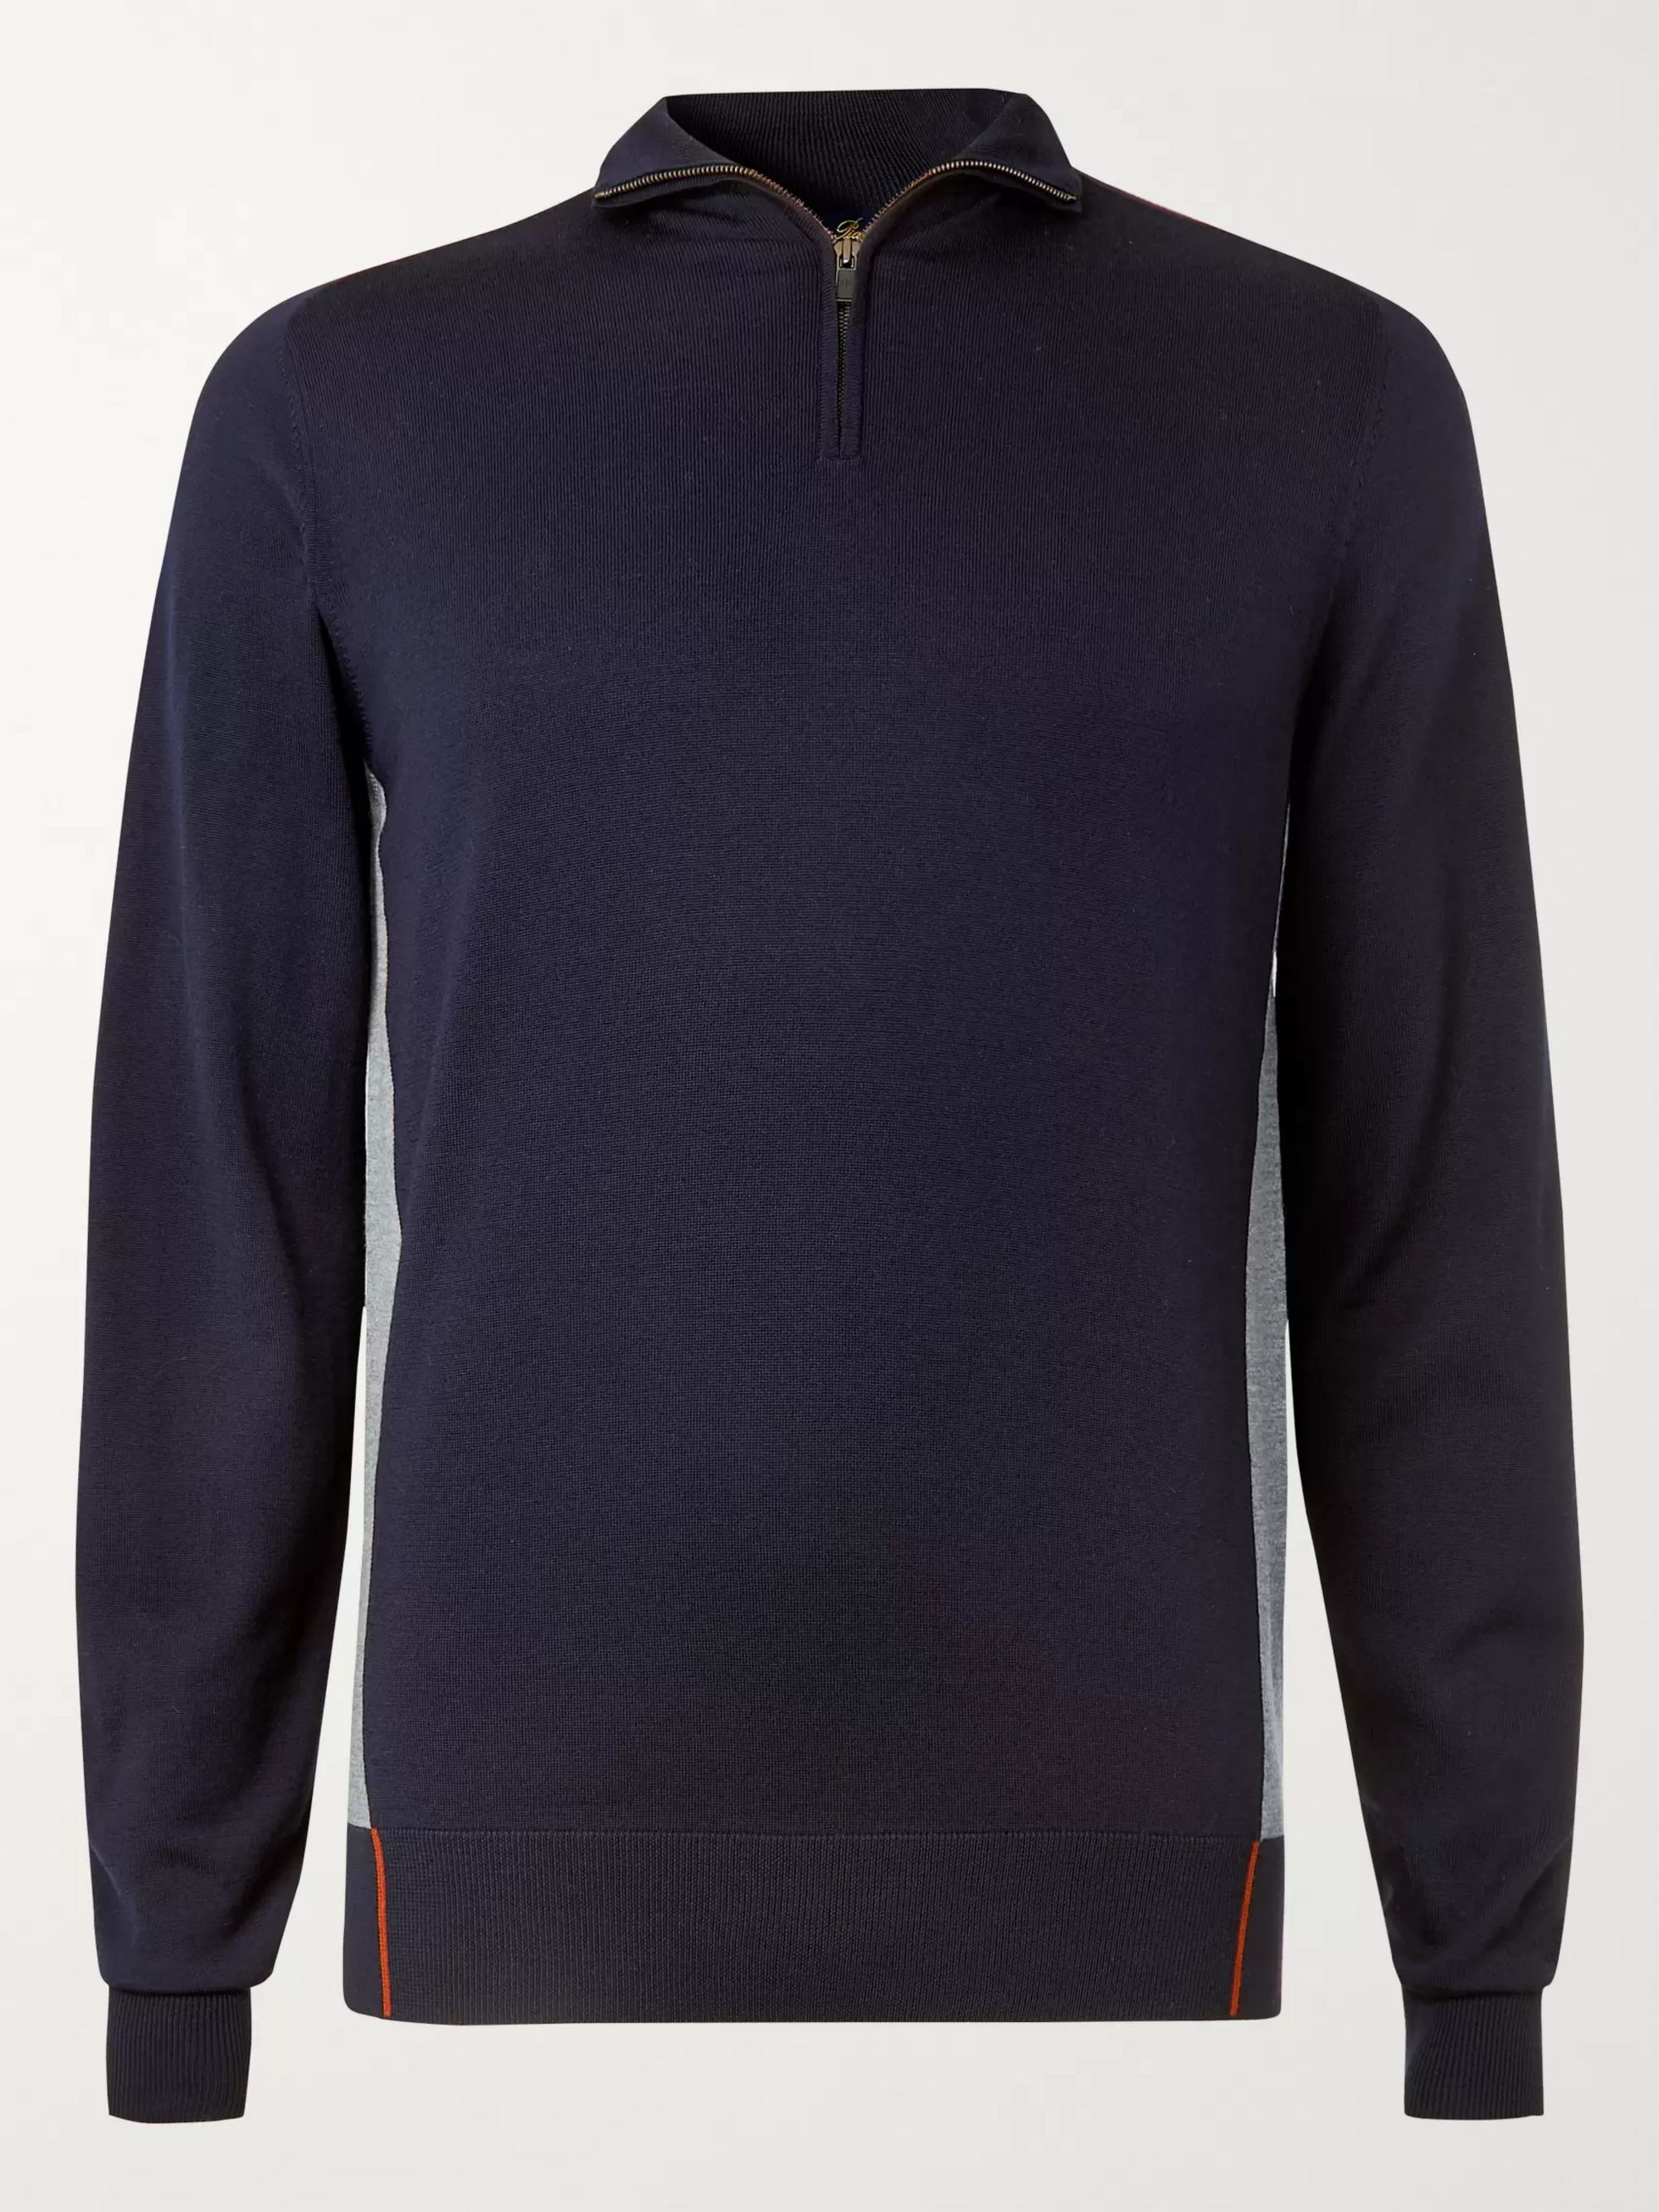 Loro Piana Virgin Wool Half-Zip Golf Sweater